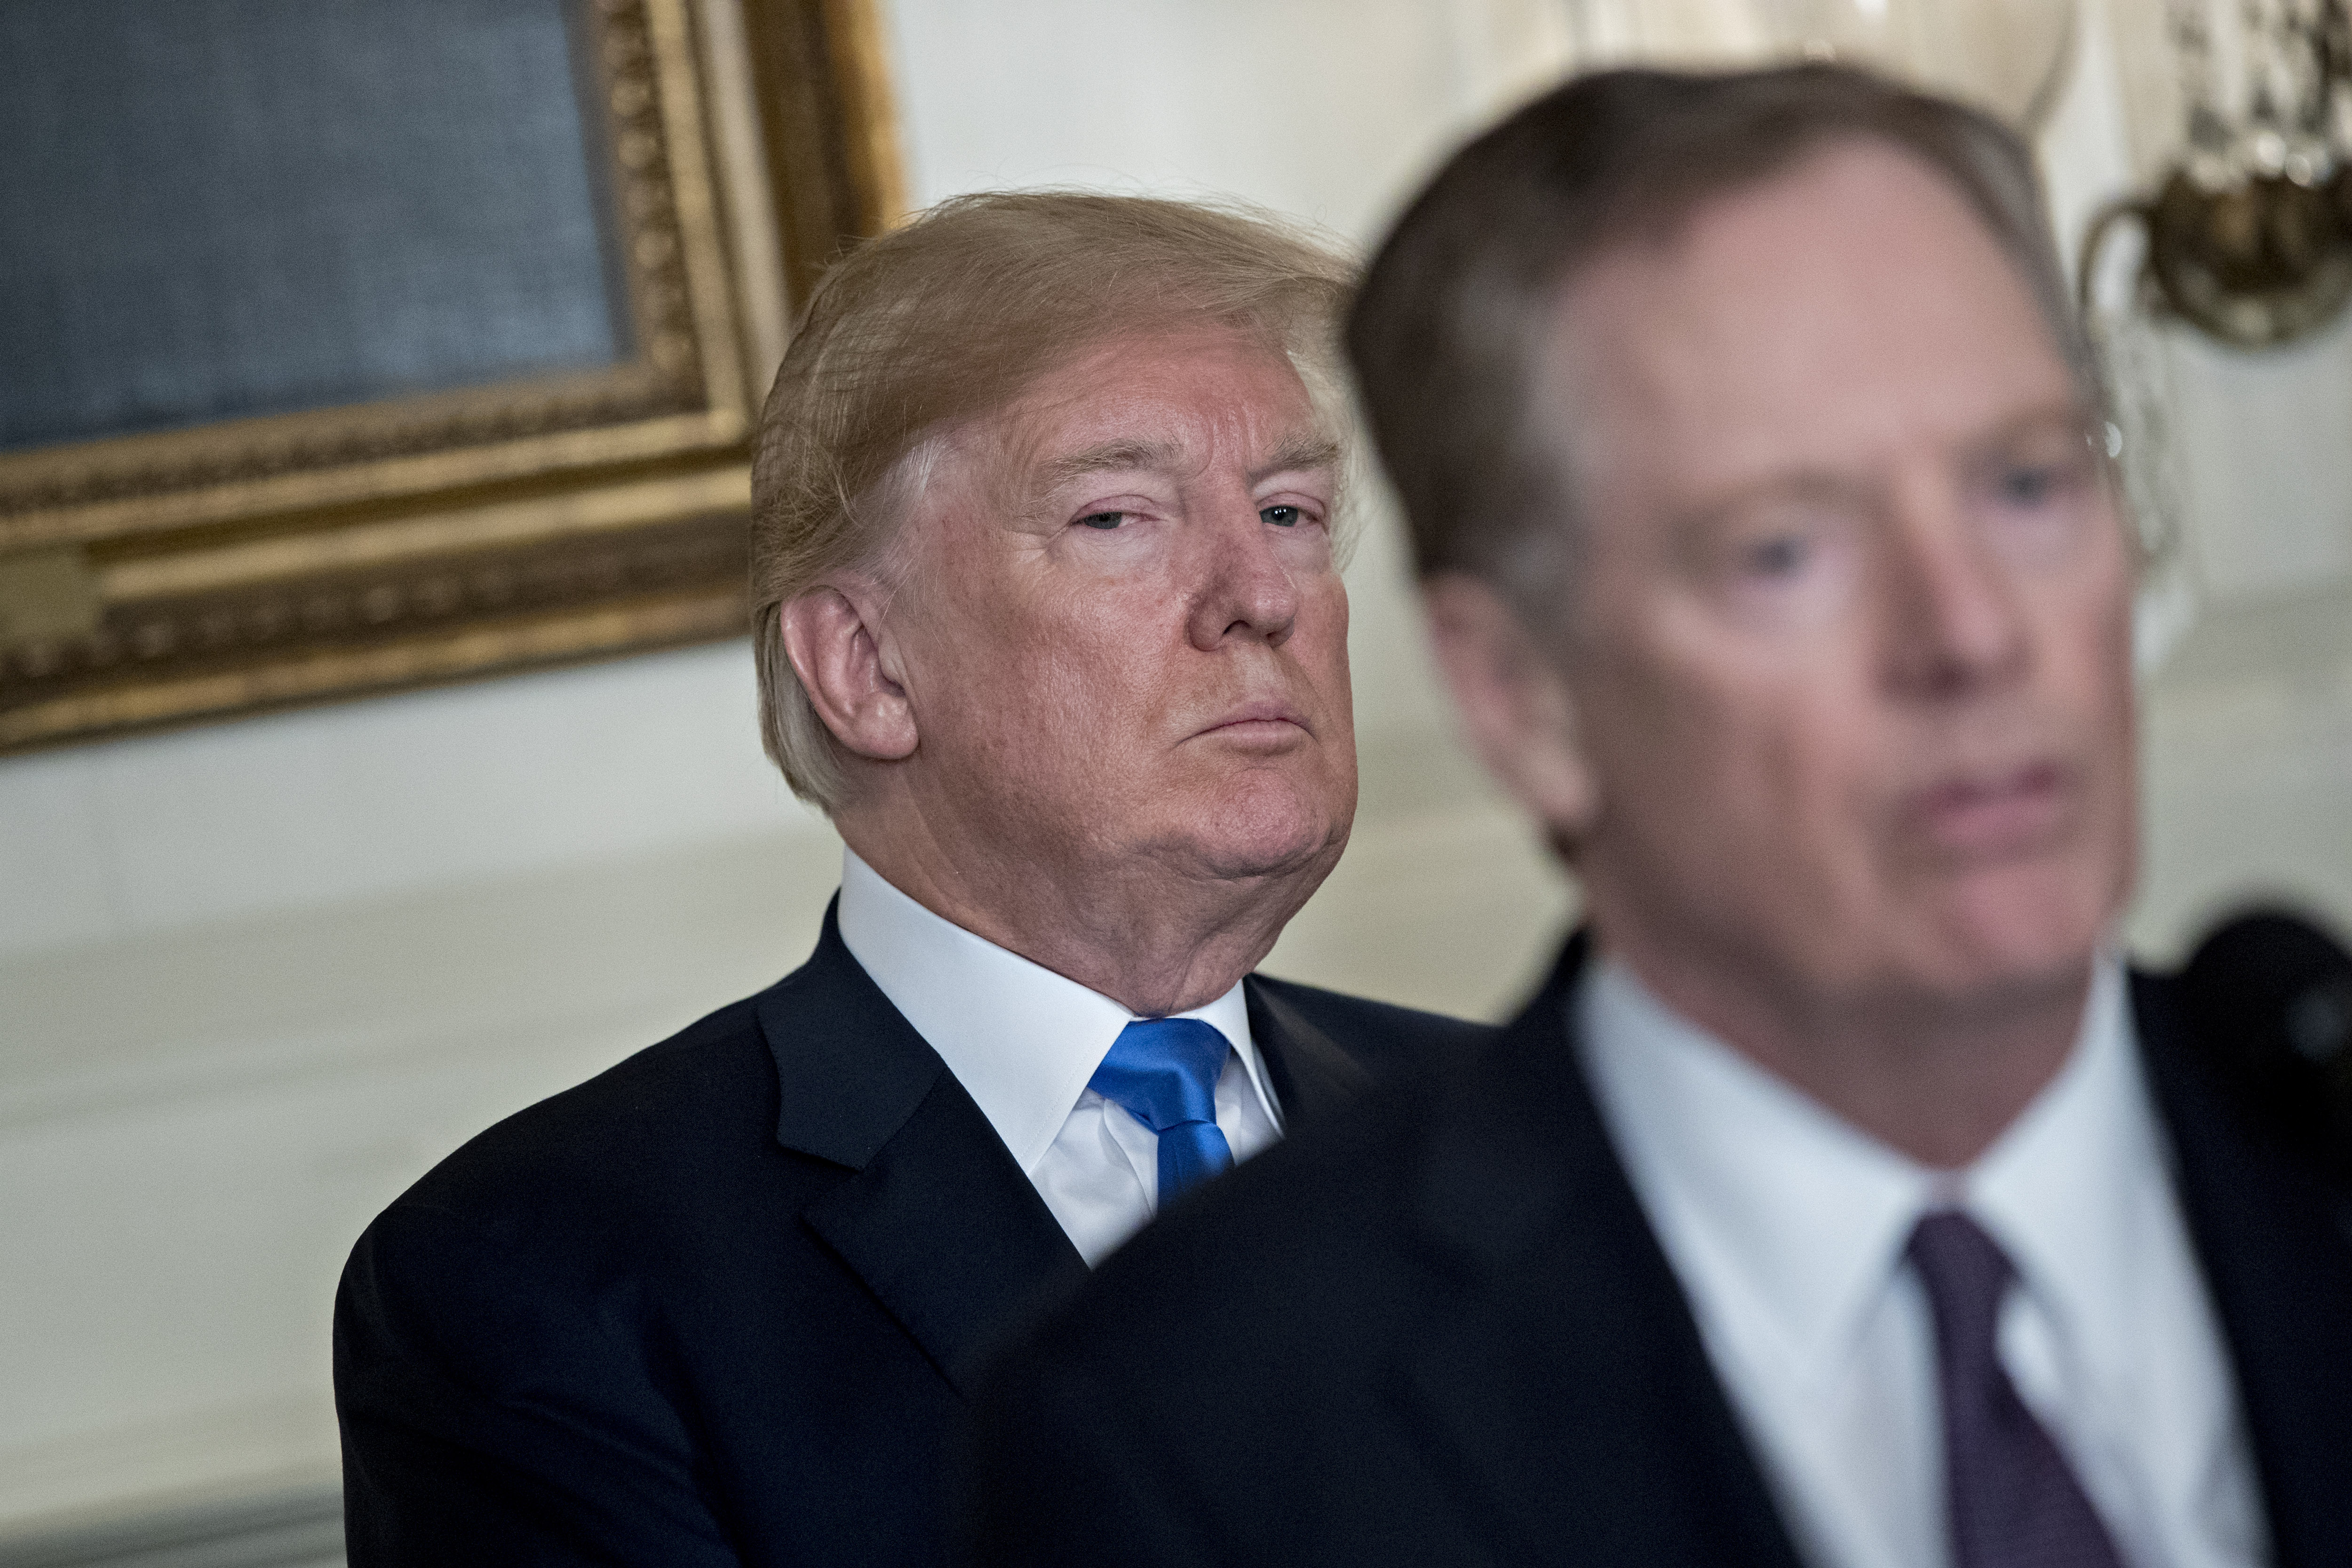 U.S. President Donald Trump listens as Robert Lighthizer, U.S. trade representative, right, speaks before Trump signs a presidential memorandum targeting China's economic aggression in the Diplomatic Room of the White House in Washington, D.C. on March 22